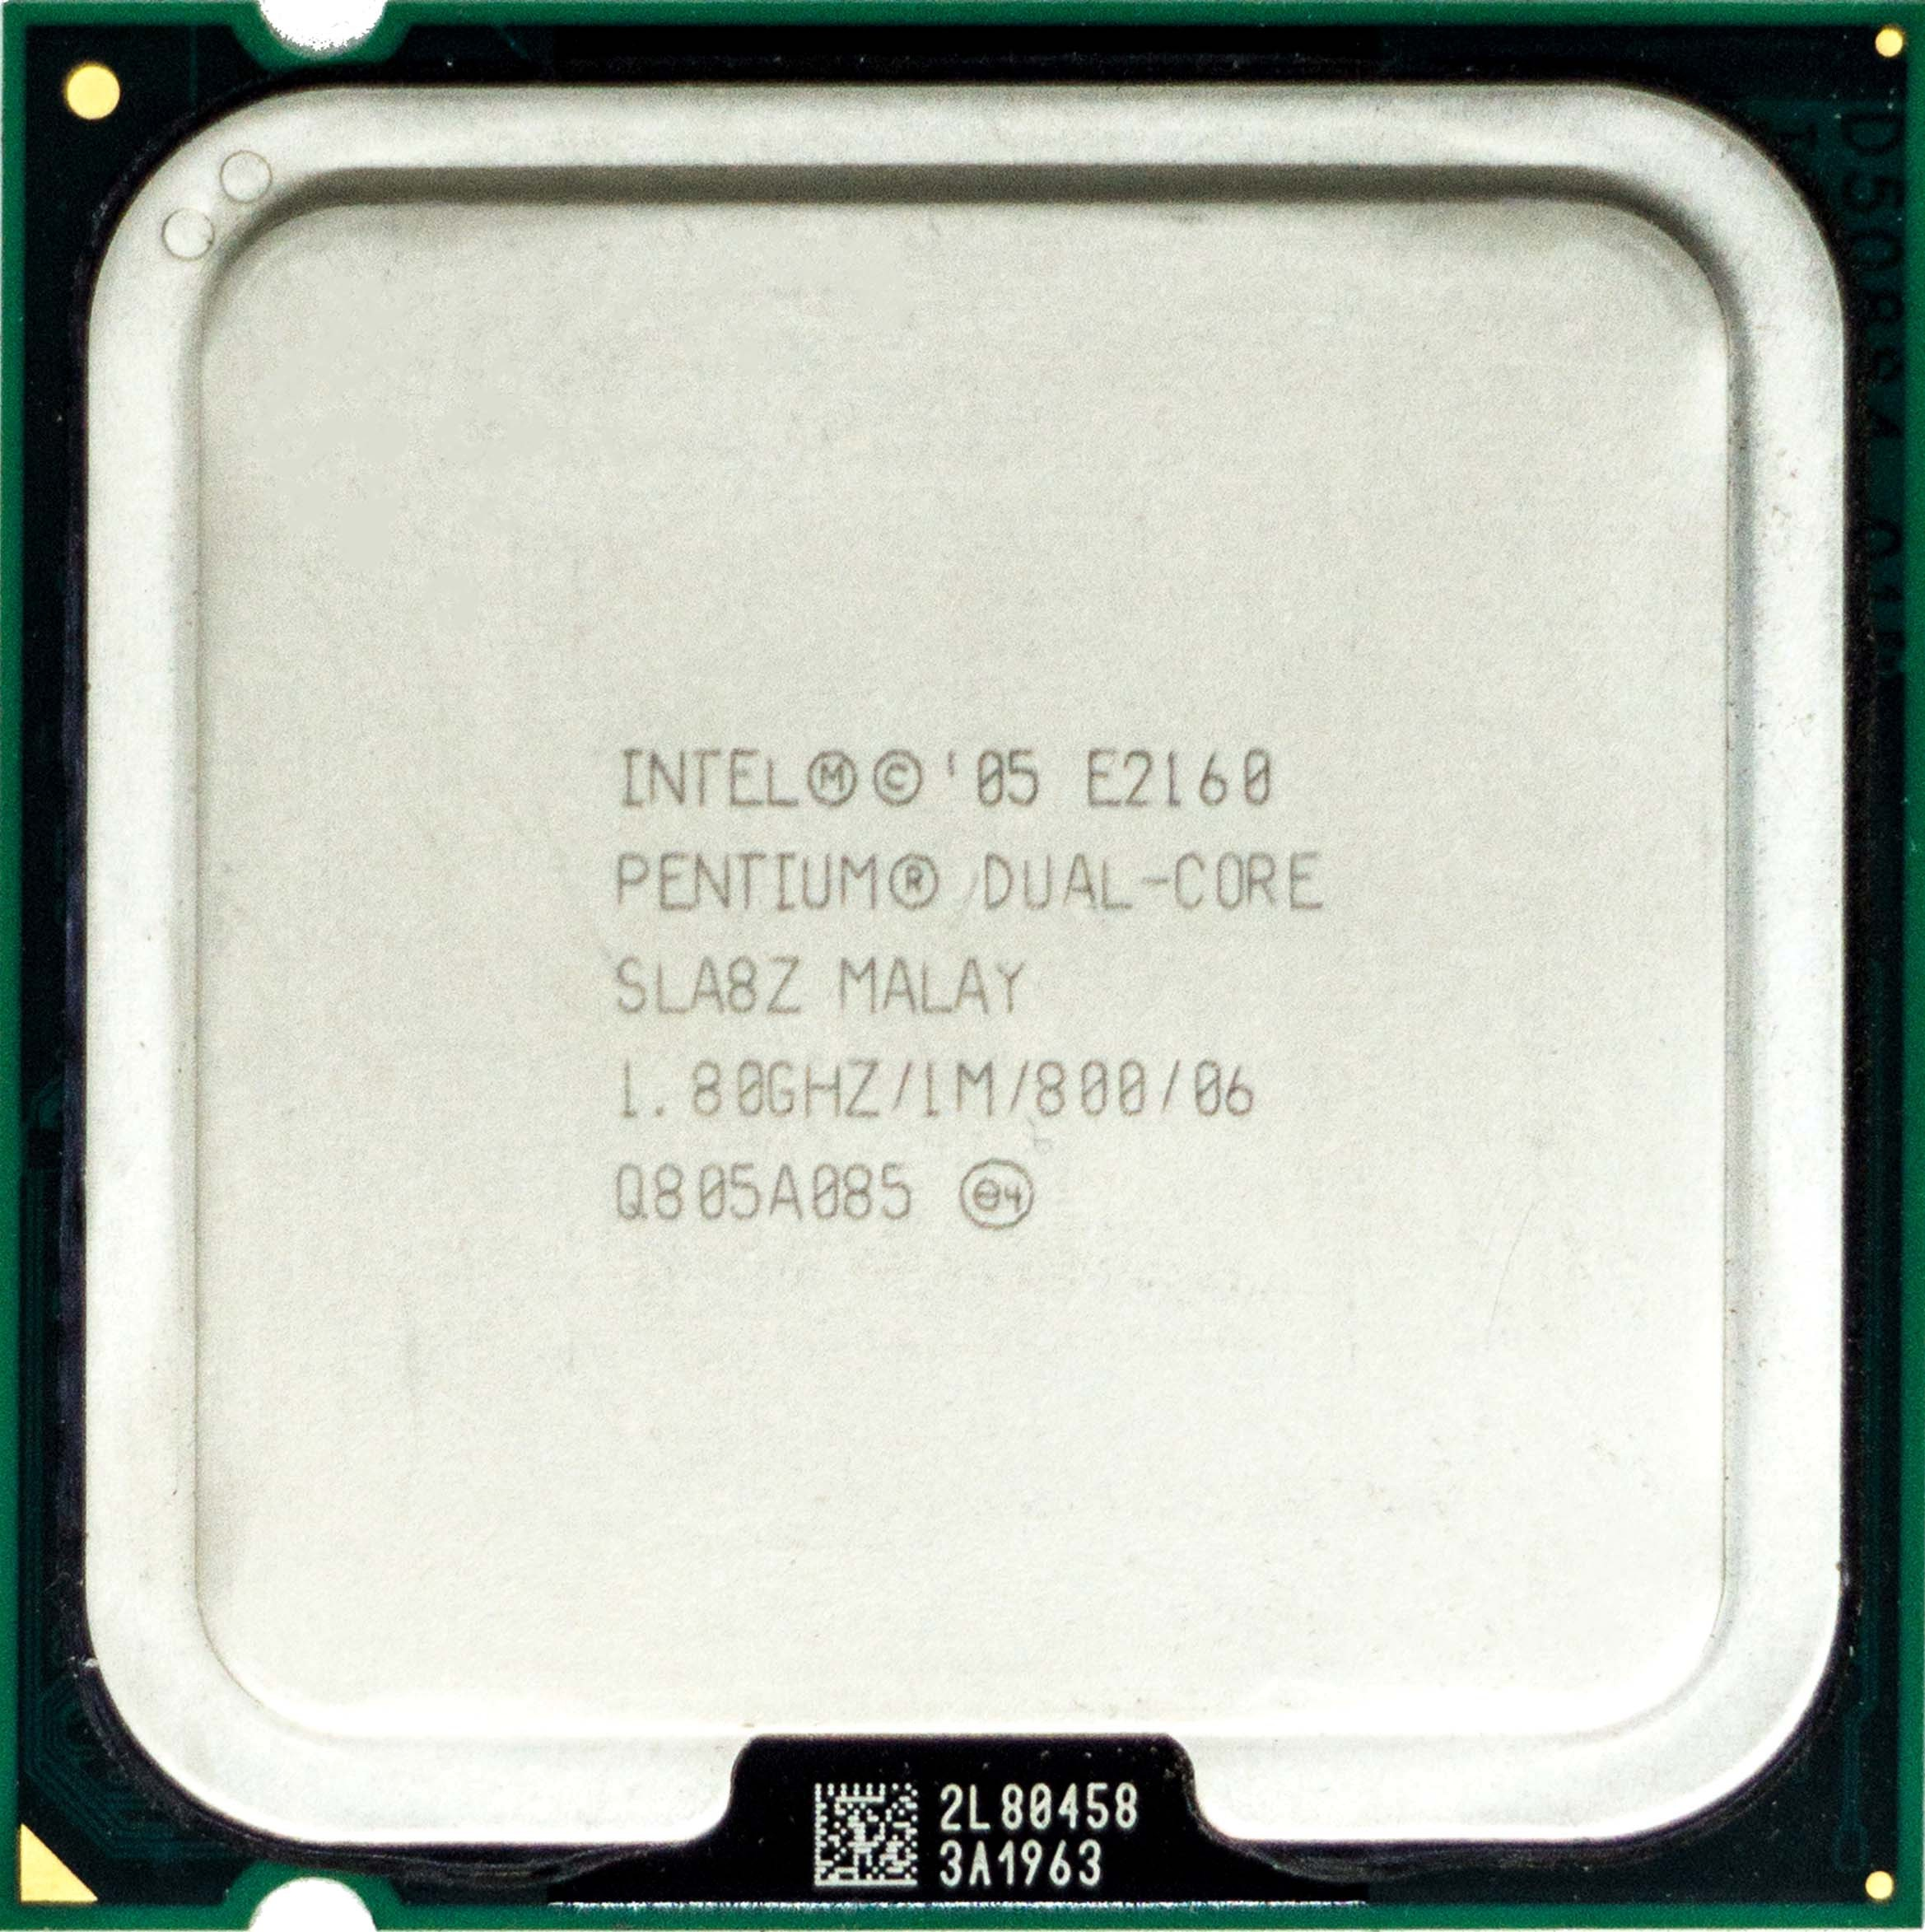 DUALCORE INTEL PENTIUM E2160 WINDOWS 8 DRIVERS DOWNLOAD (2019)